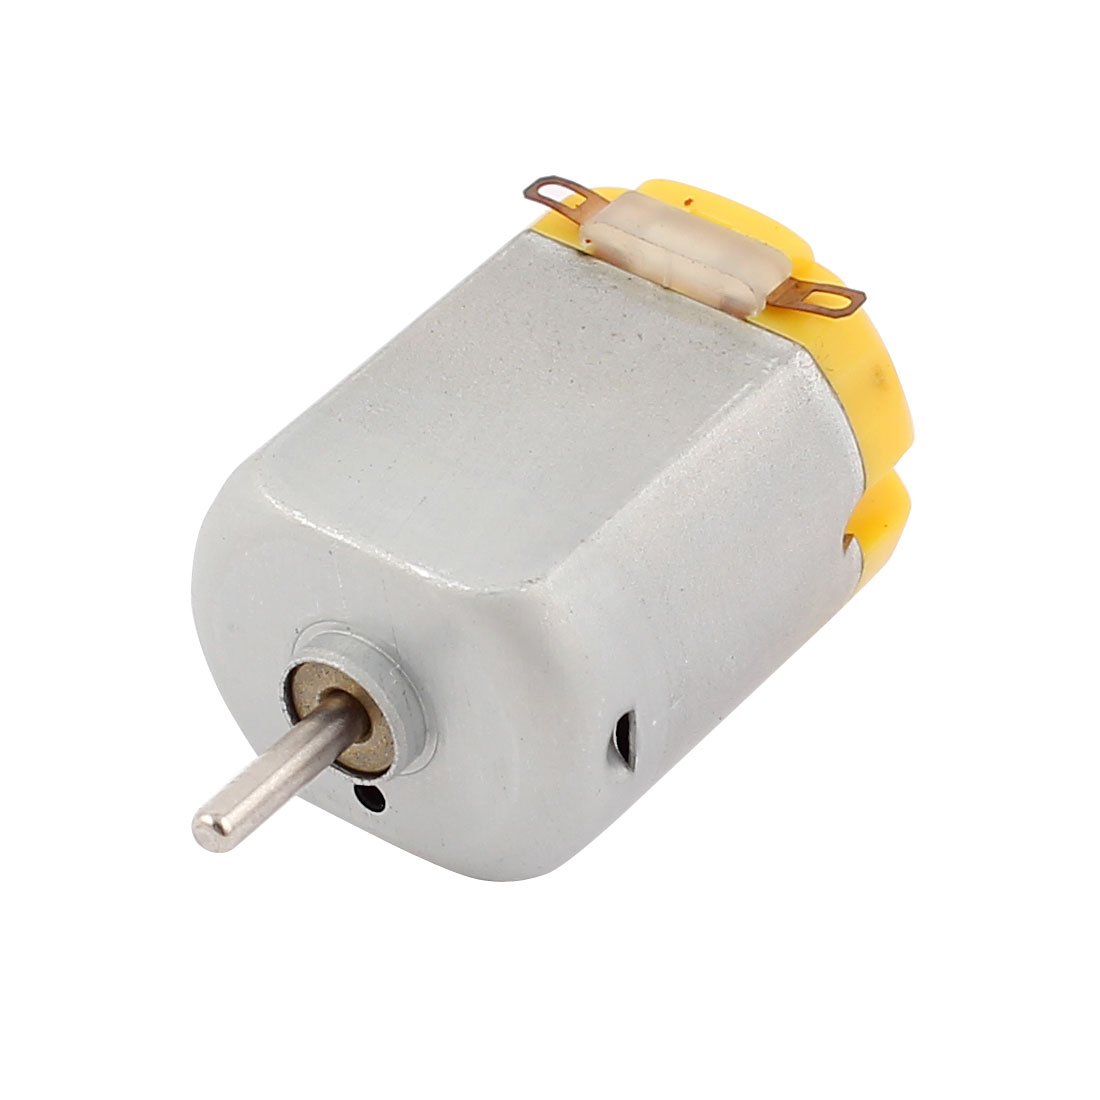 DC 6V 12500RPM Rotary Speed Magnetic Mini Motor for DIY Toy